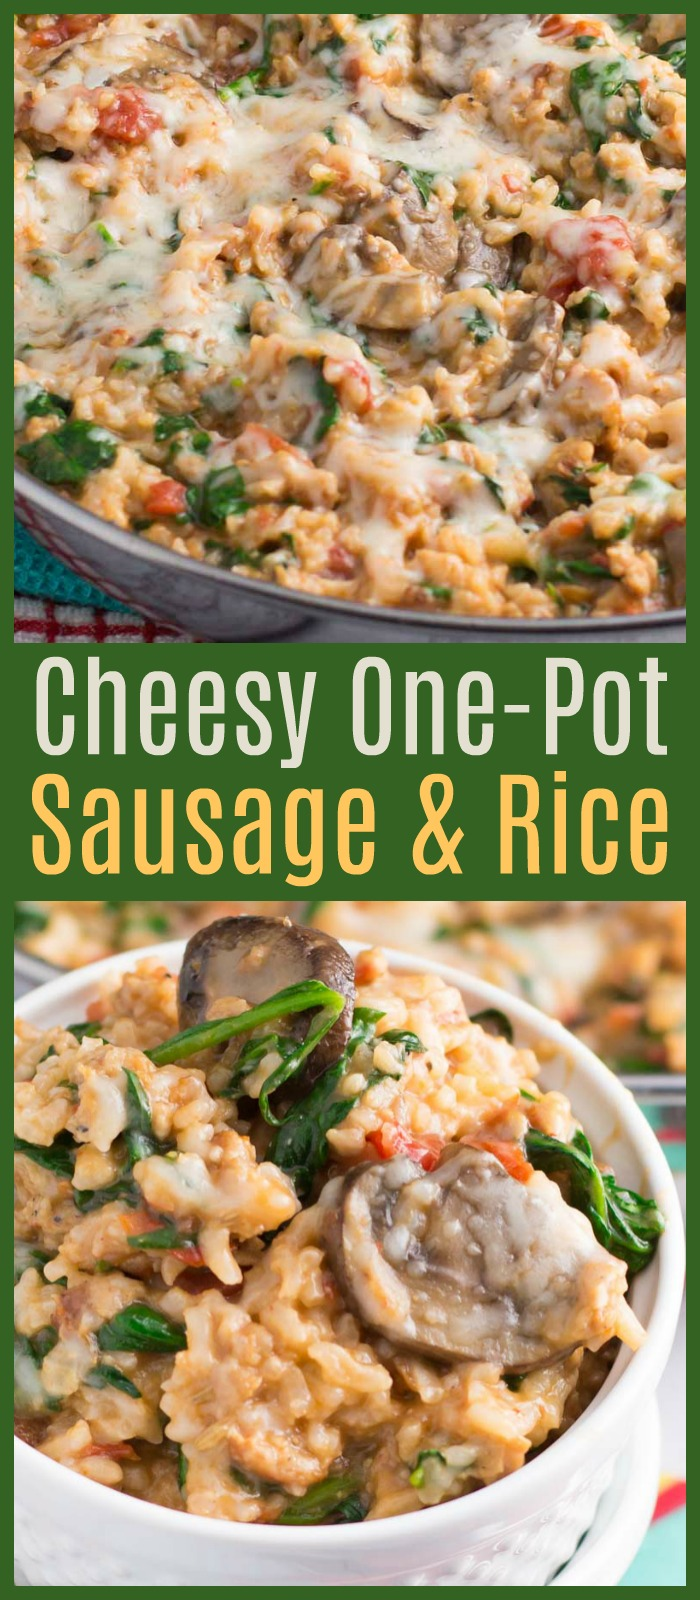 You are sure to love this cheesySausage and Rice Skillet!Mushrooms, tomatoes, and spinach make this one-pot dinner wonderfully flavorful. #sausage #rice #onepot #skillet